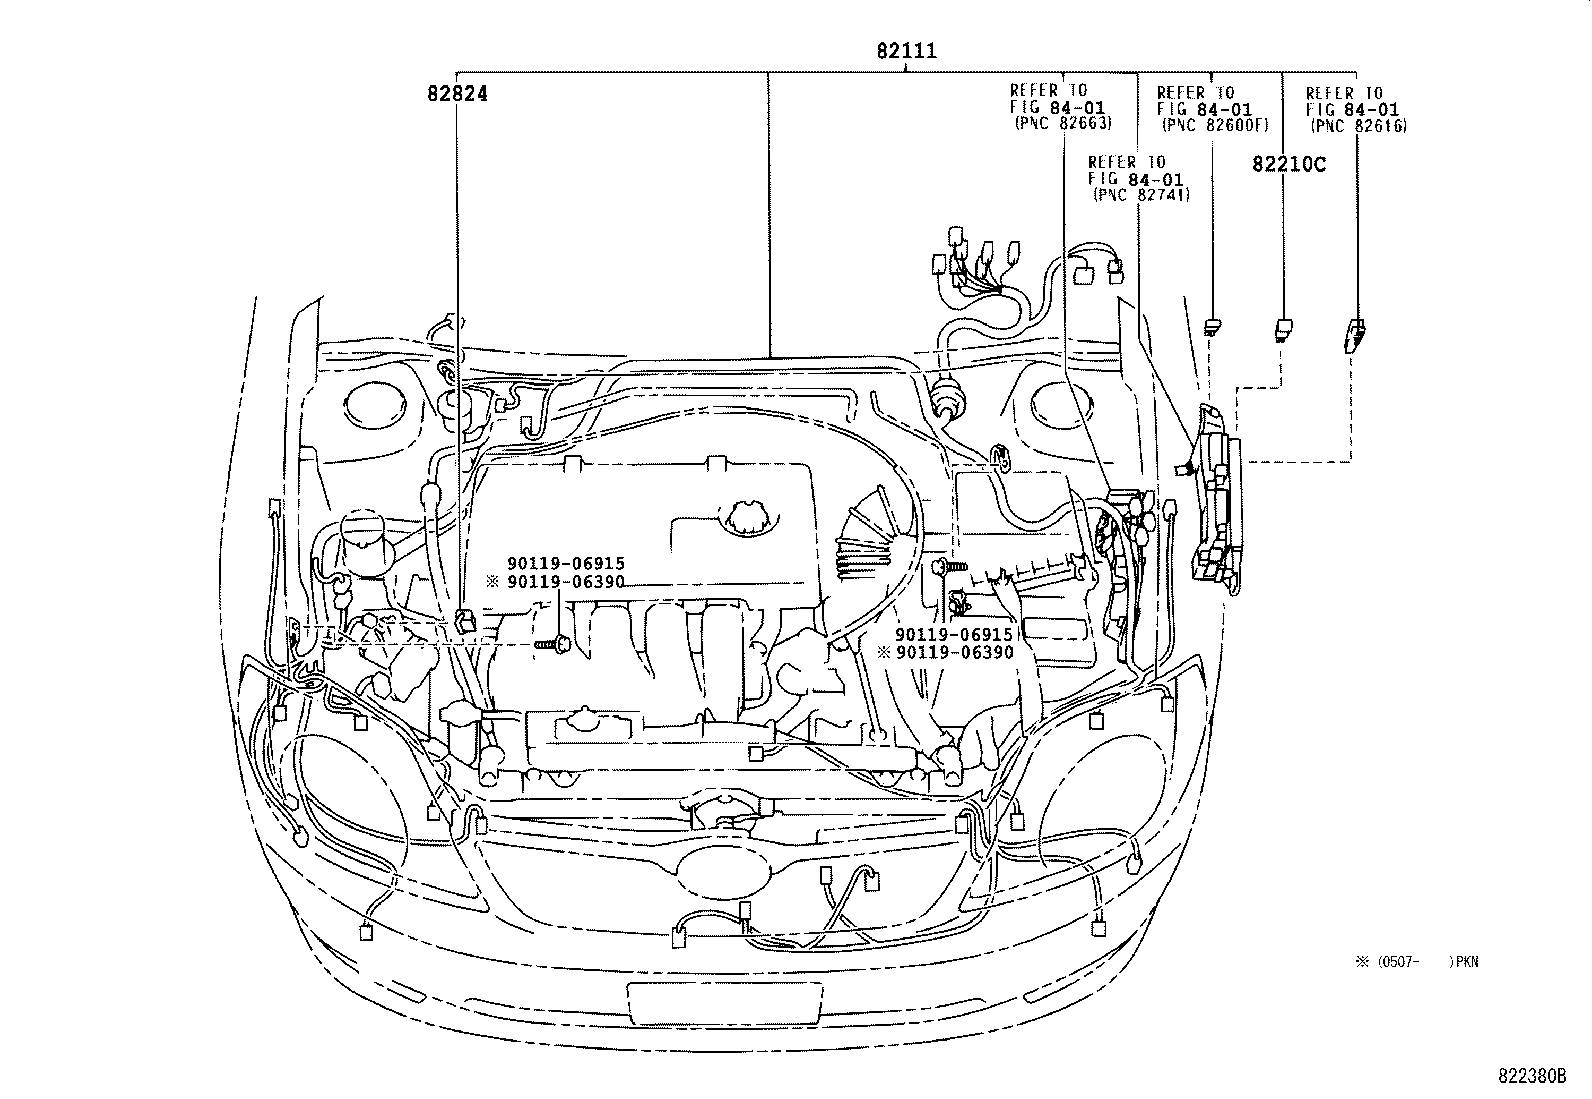 Part code, Title, information, i. 82824, CONNECTOR, WIRING HARNESS